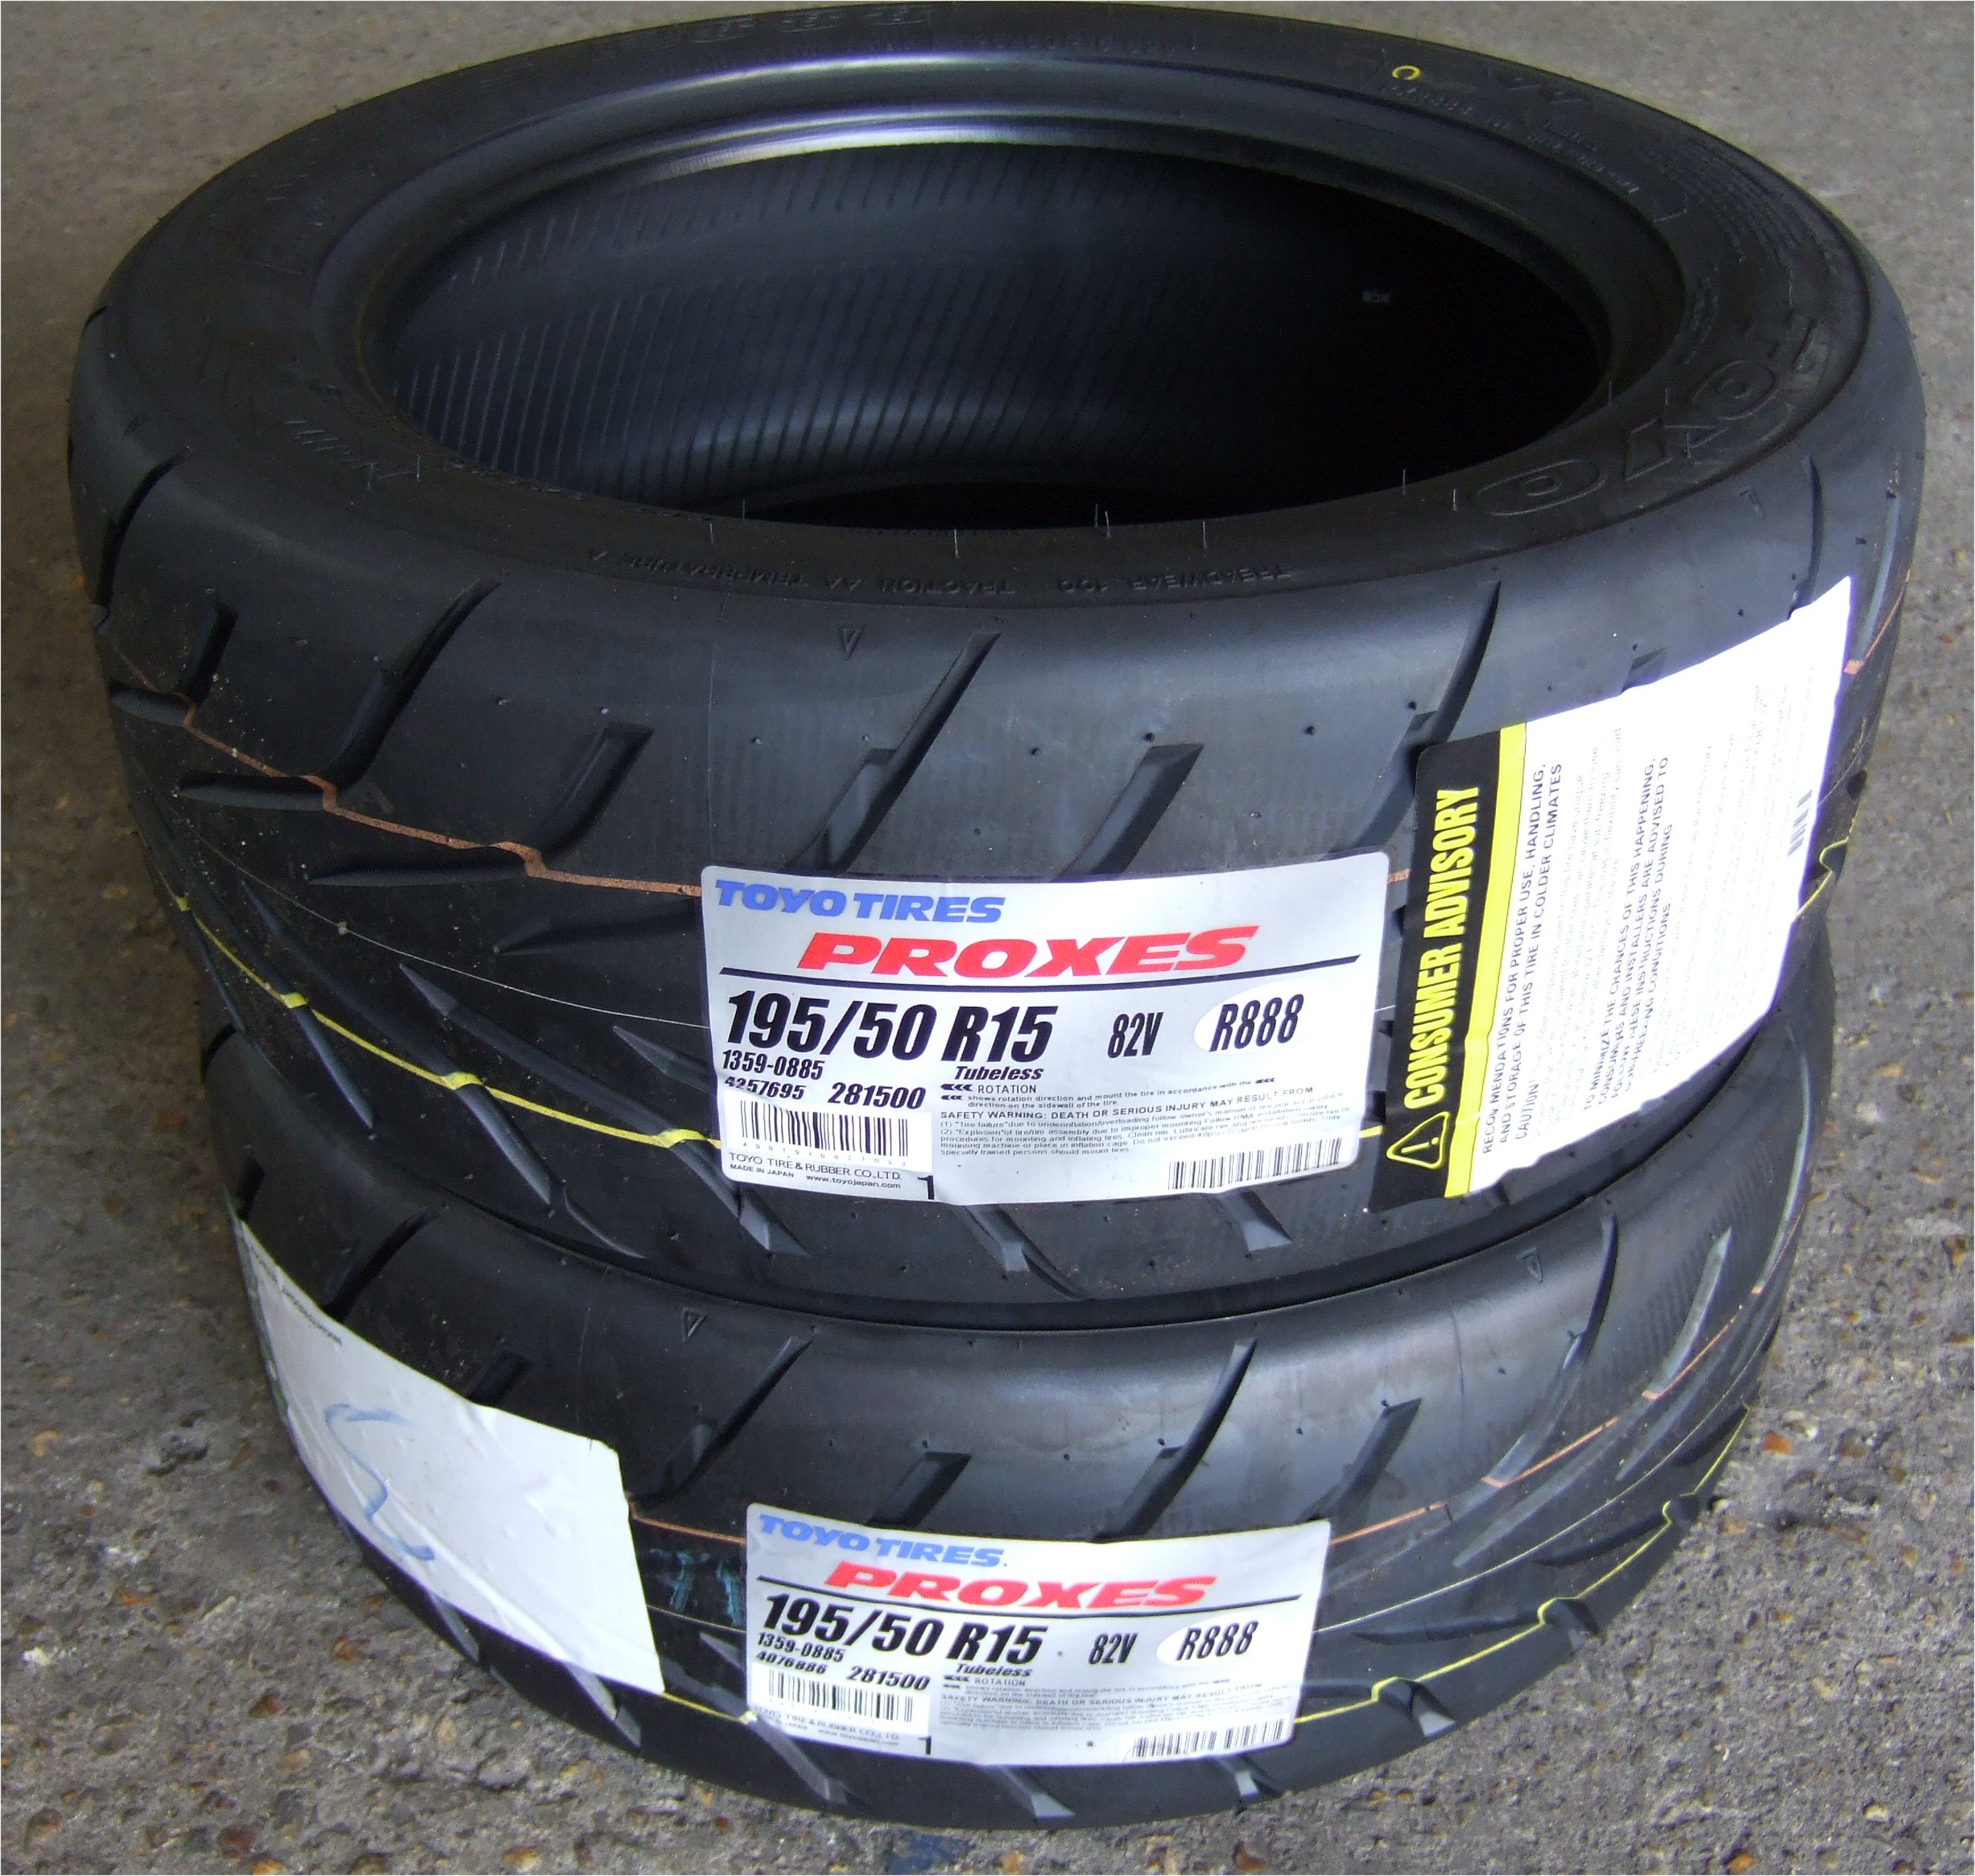 195 50 15 toyo proxes r888 track day tyres 1955015 195 50 15 pair of 2 ebay. Black Bedroom Furniture Sets. Home Design Ideas